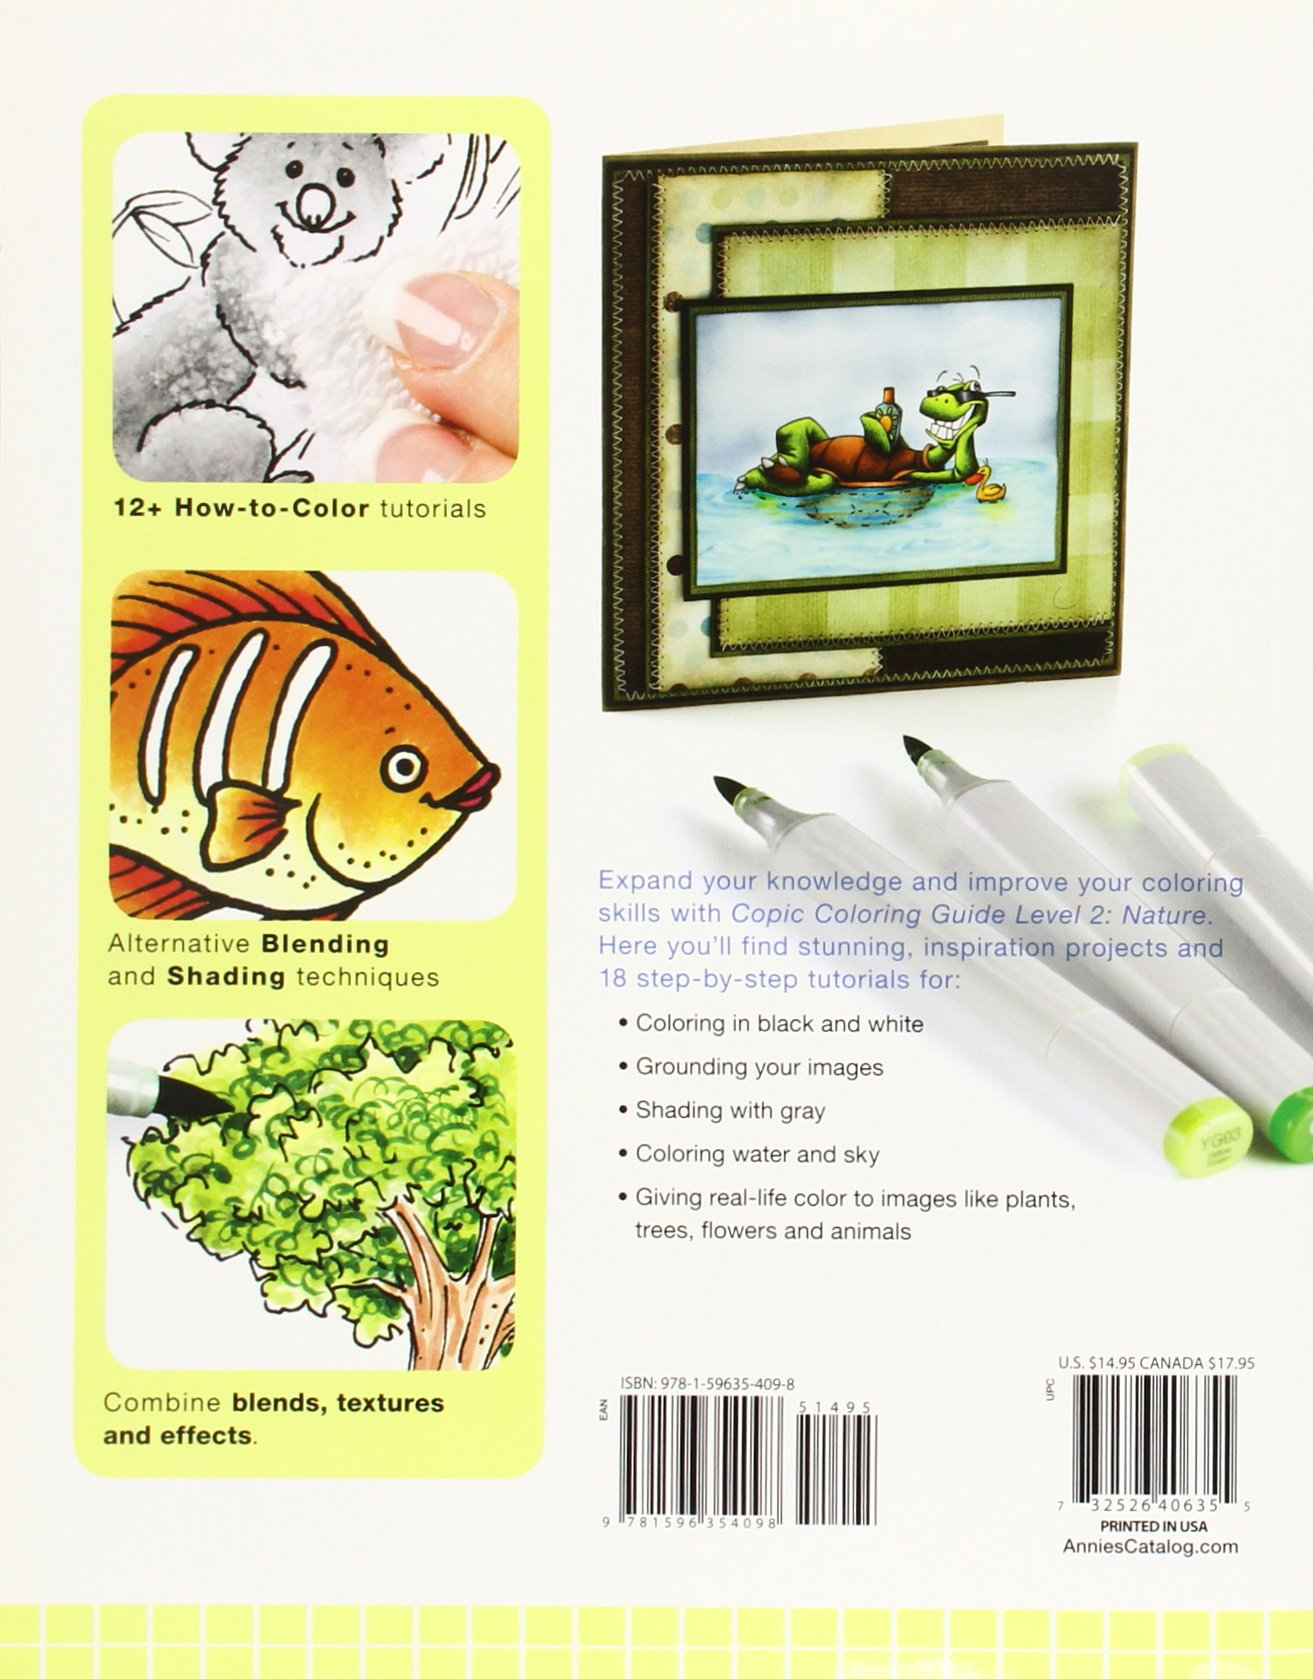 Buy Copic Coloring Guide Level 2: Nature Book Online at Low Prices ...